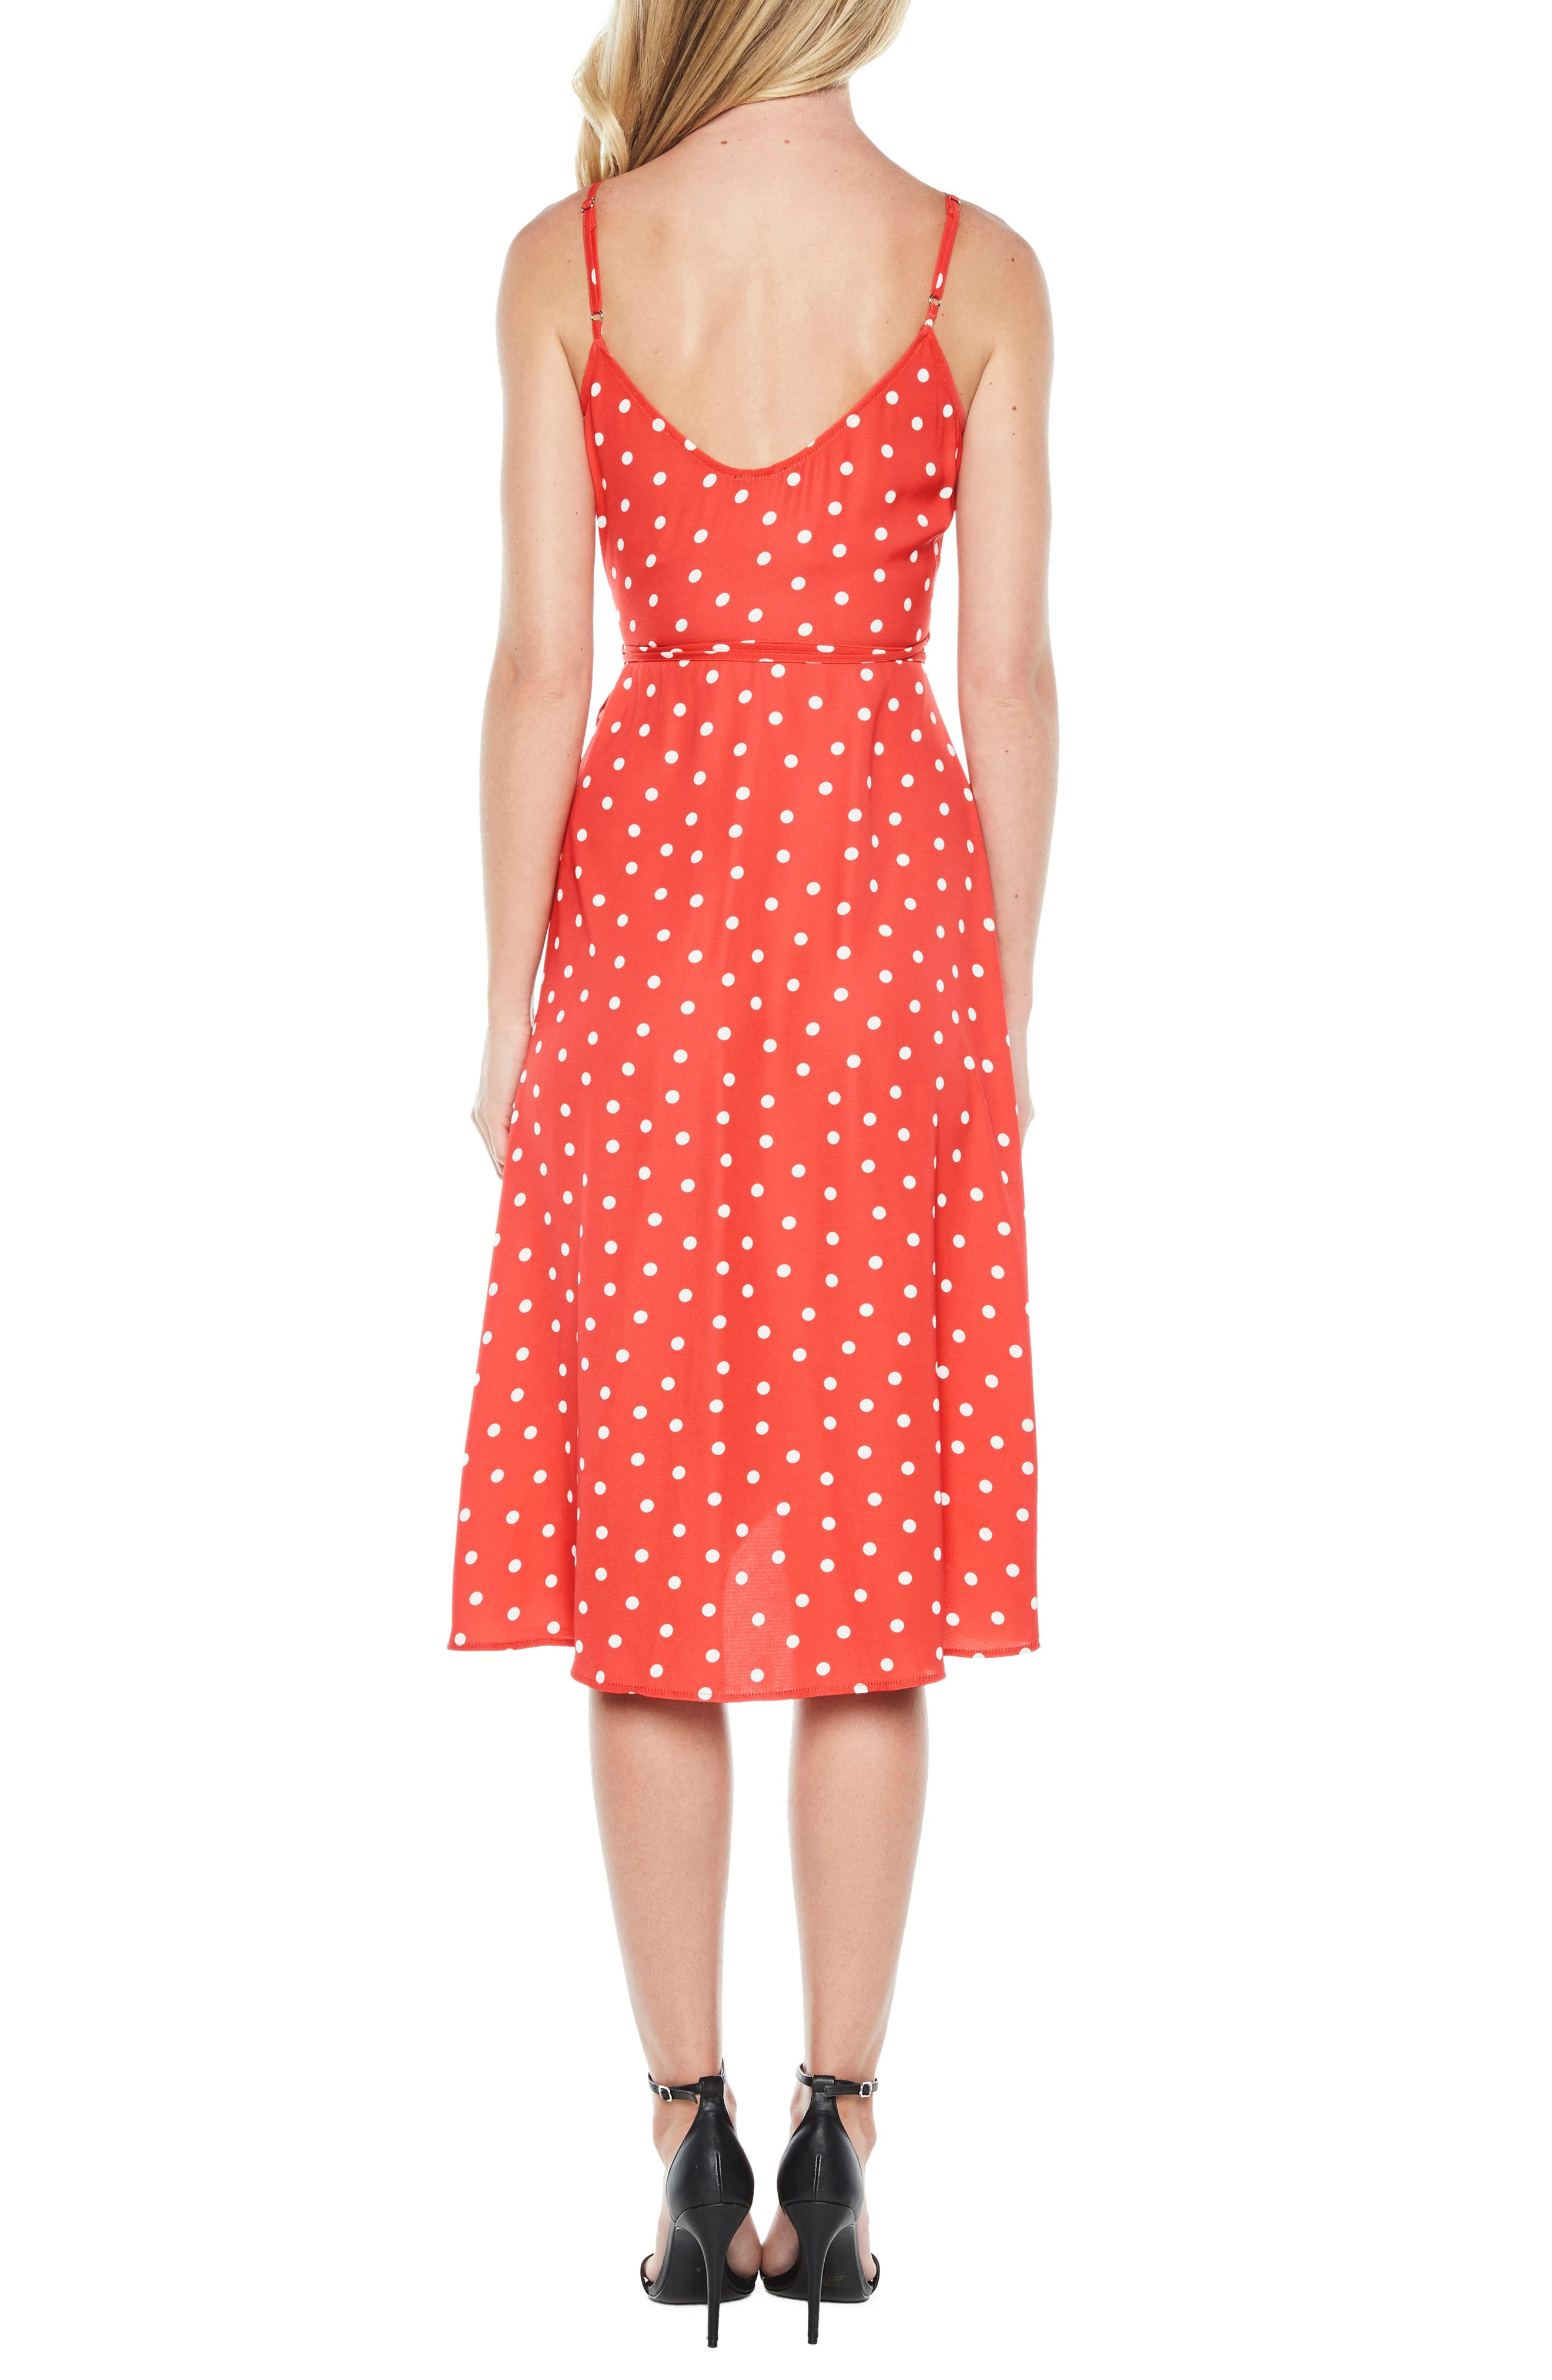 Dotted Wrap Dress,                             Alternate thumbnail 3, color,                             Red Spot